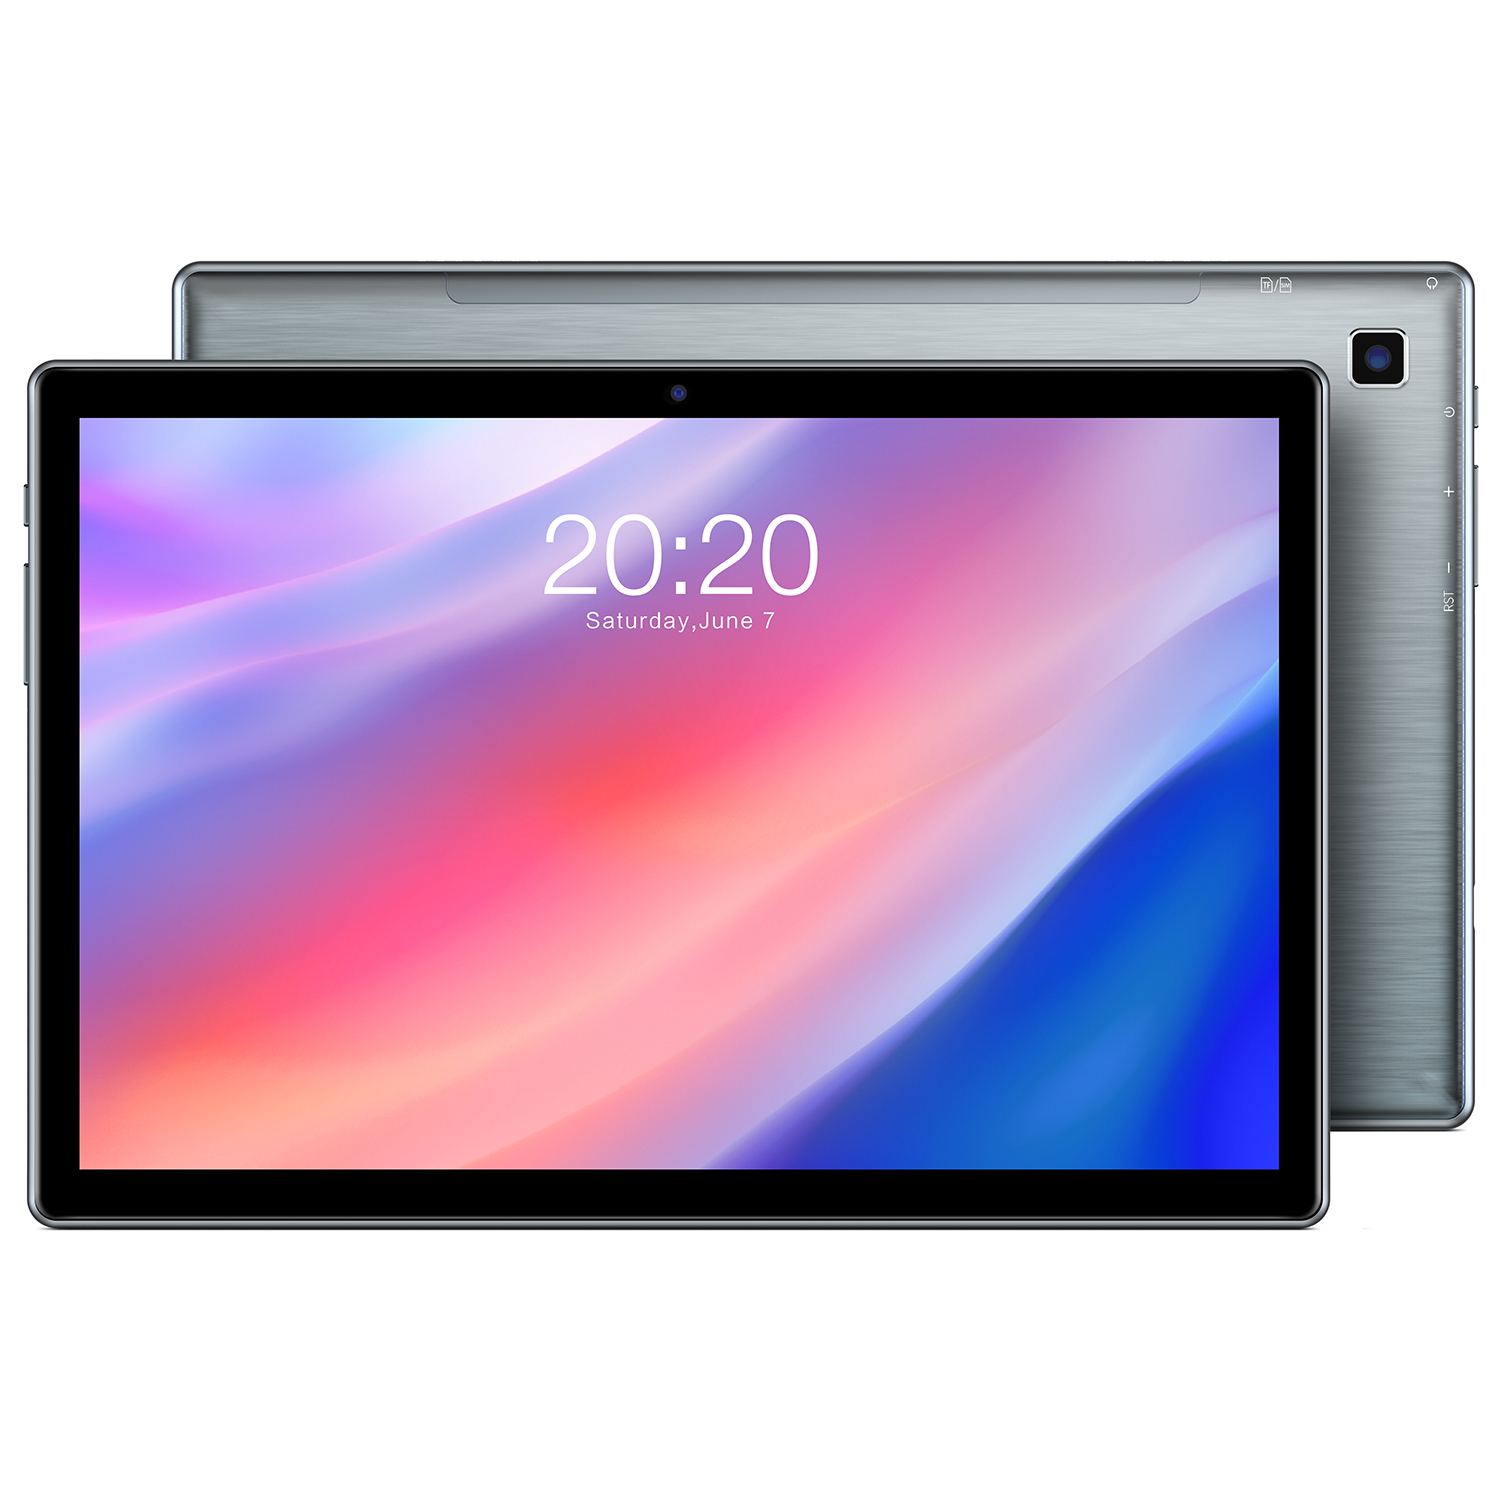 Original TECLAST P20 Tablet 10.1inch High-definition Screen Metal 1920×1200 4GB RAM 64GB ROM Type-C AI-speed-up 6 Android 10.0 Tablet Pc Eu plug 4+64